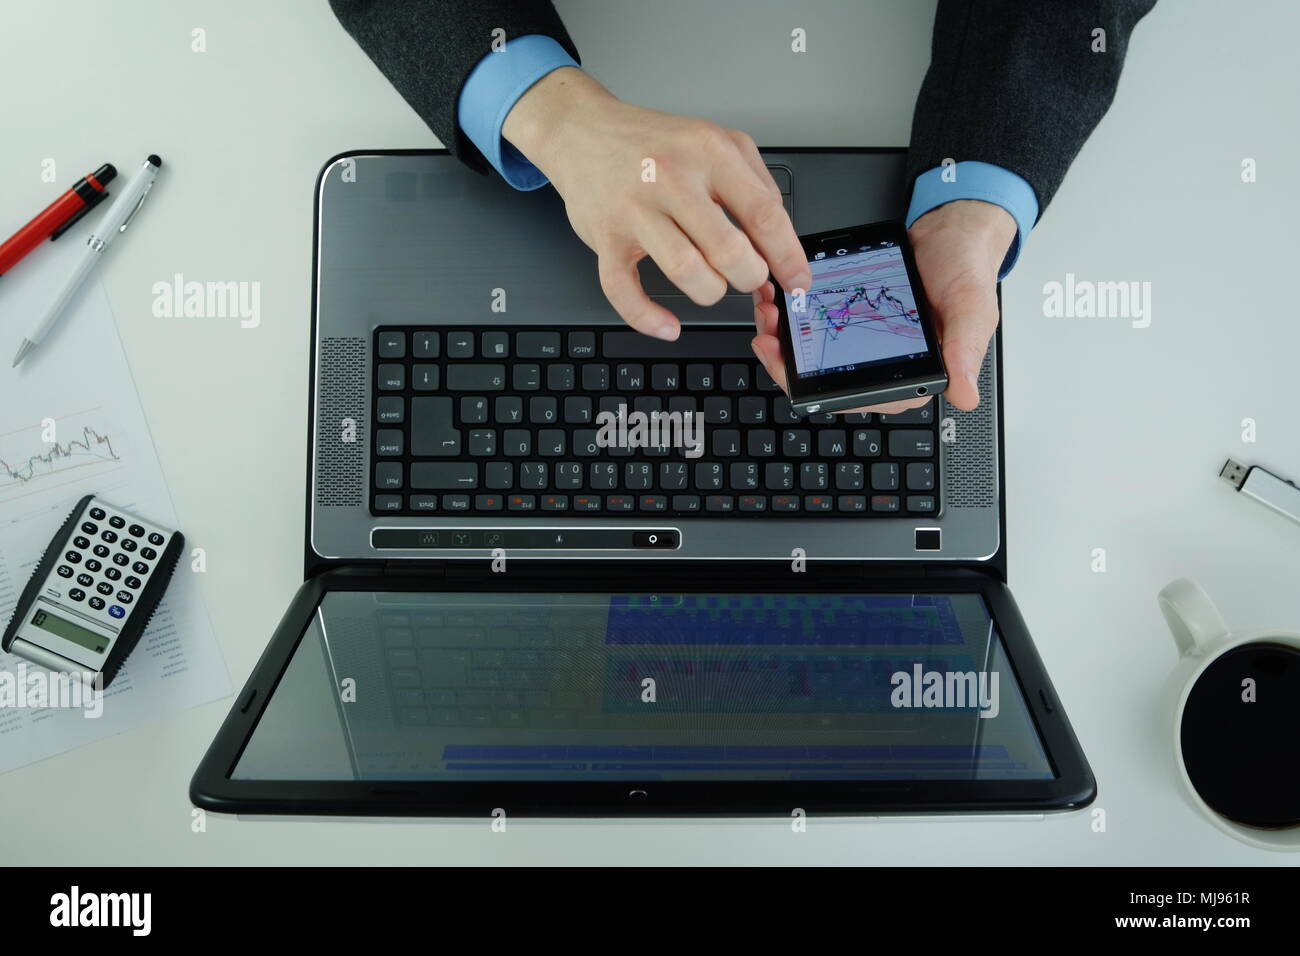 Working on a laptop and using smartphone - Stock Image